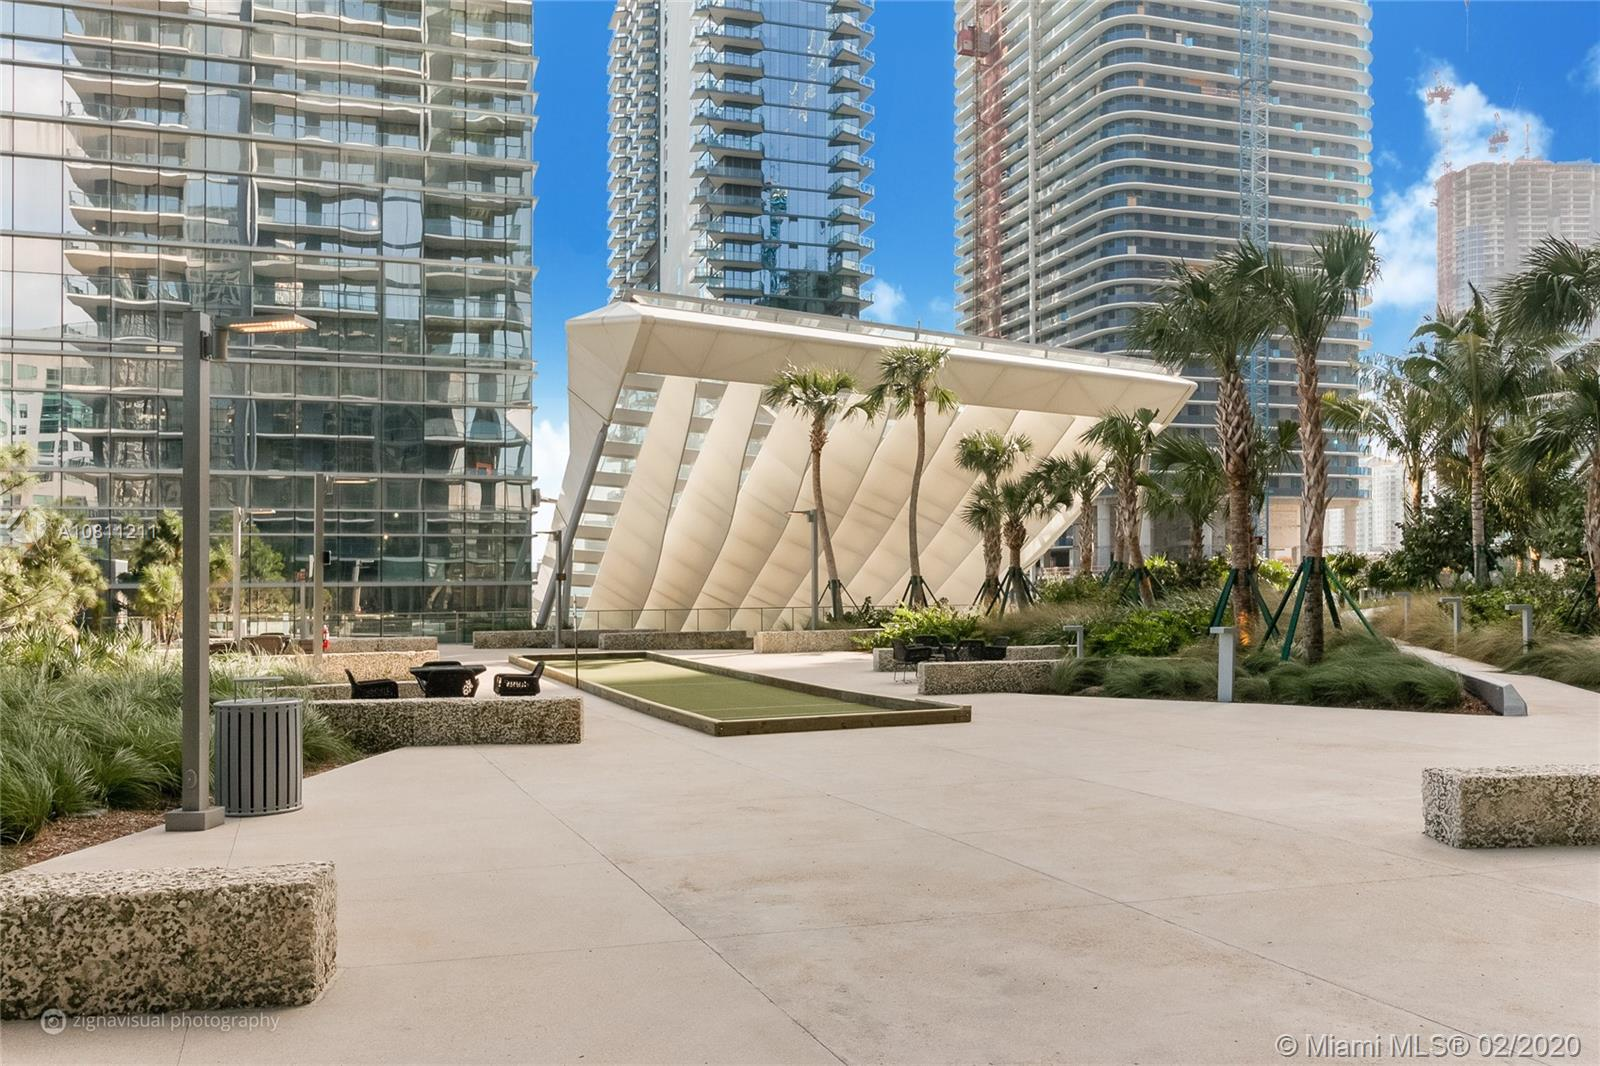 Rise Brickell City Centre #2411 - 88 SW 7TH #2411, Miami, FL 33130